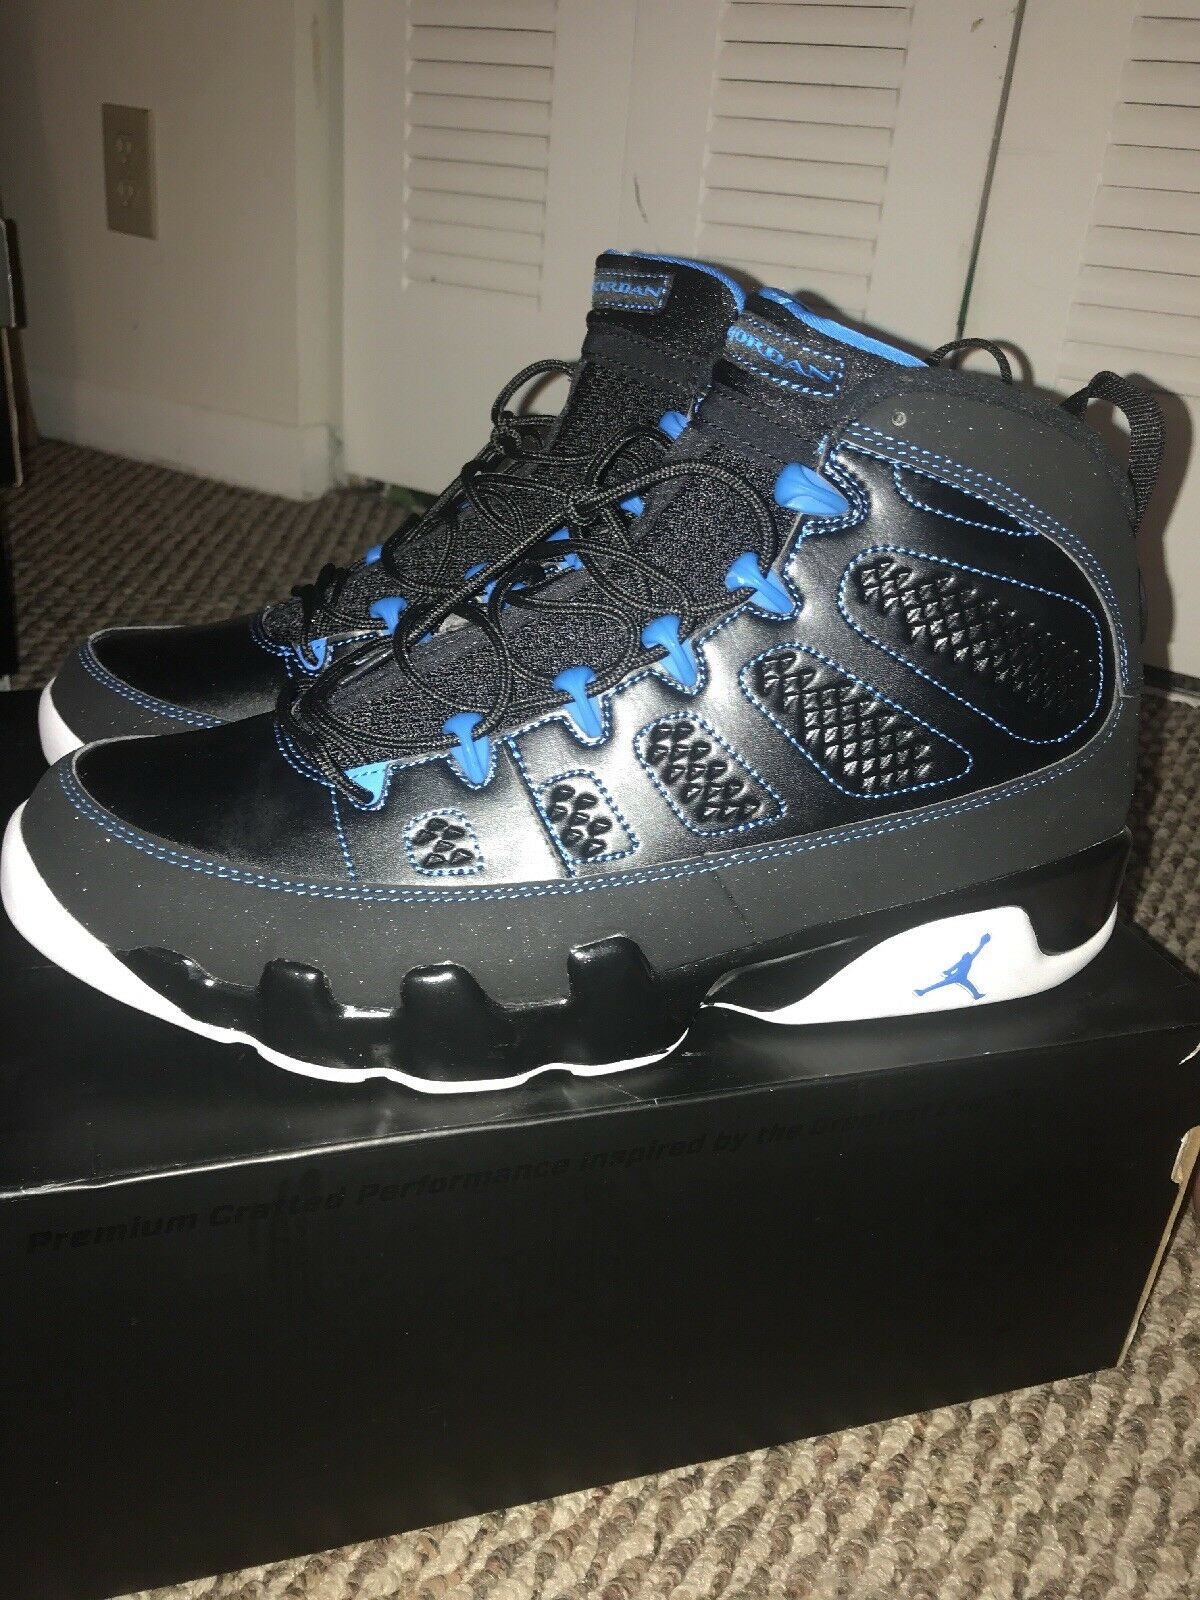 AIR JORDAN 9 RETRO Vnds 9.9/10 PHOTO BLUE SIZE 11 yeezy bred kaws nmd ultraboost